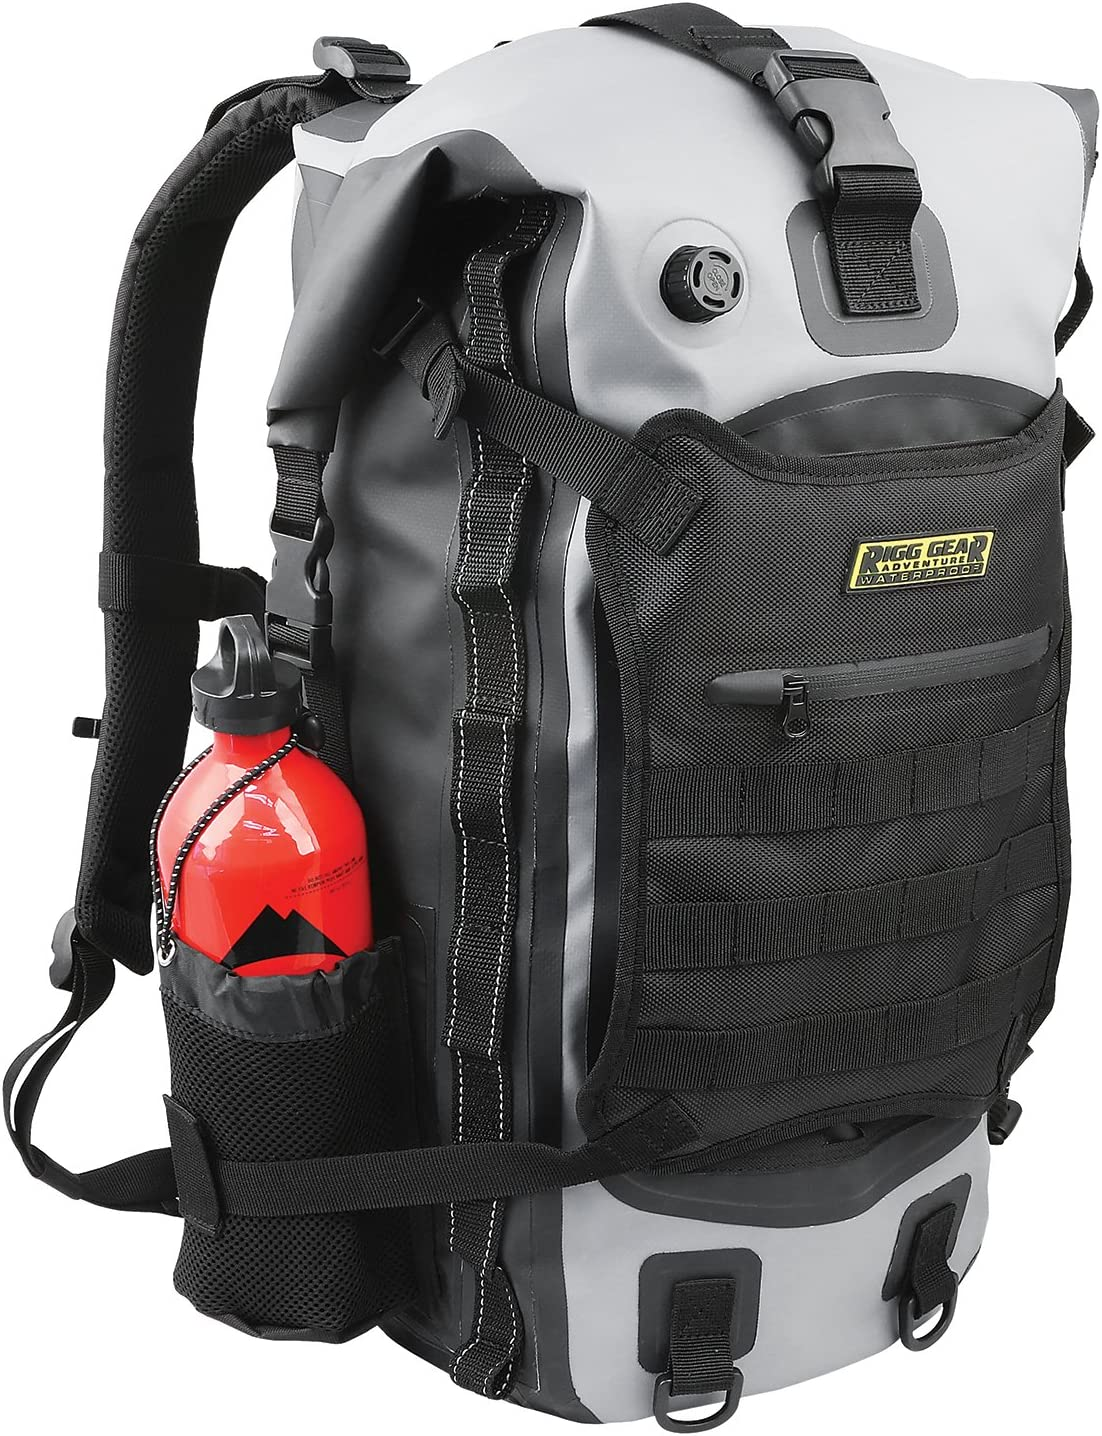 Nelson-Rigg SE-3040 40 Liter Gear Hurricane 40L Waterproof Backpack/Tail Pack, Black